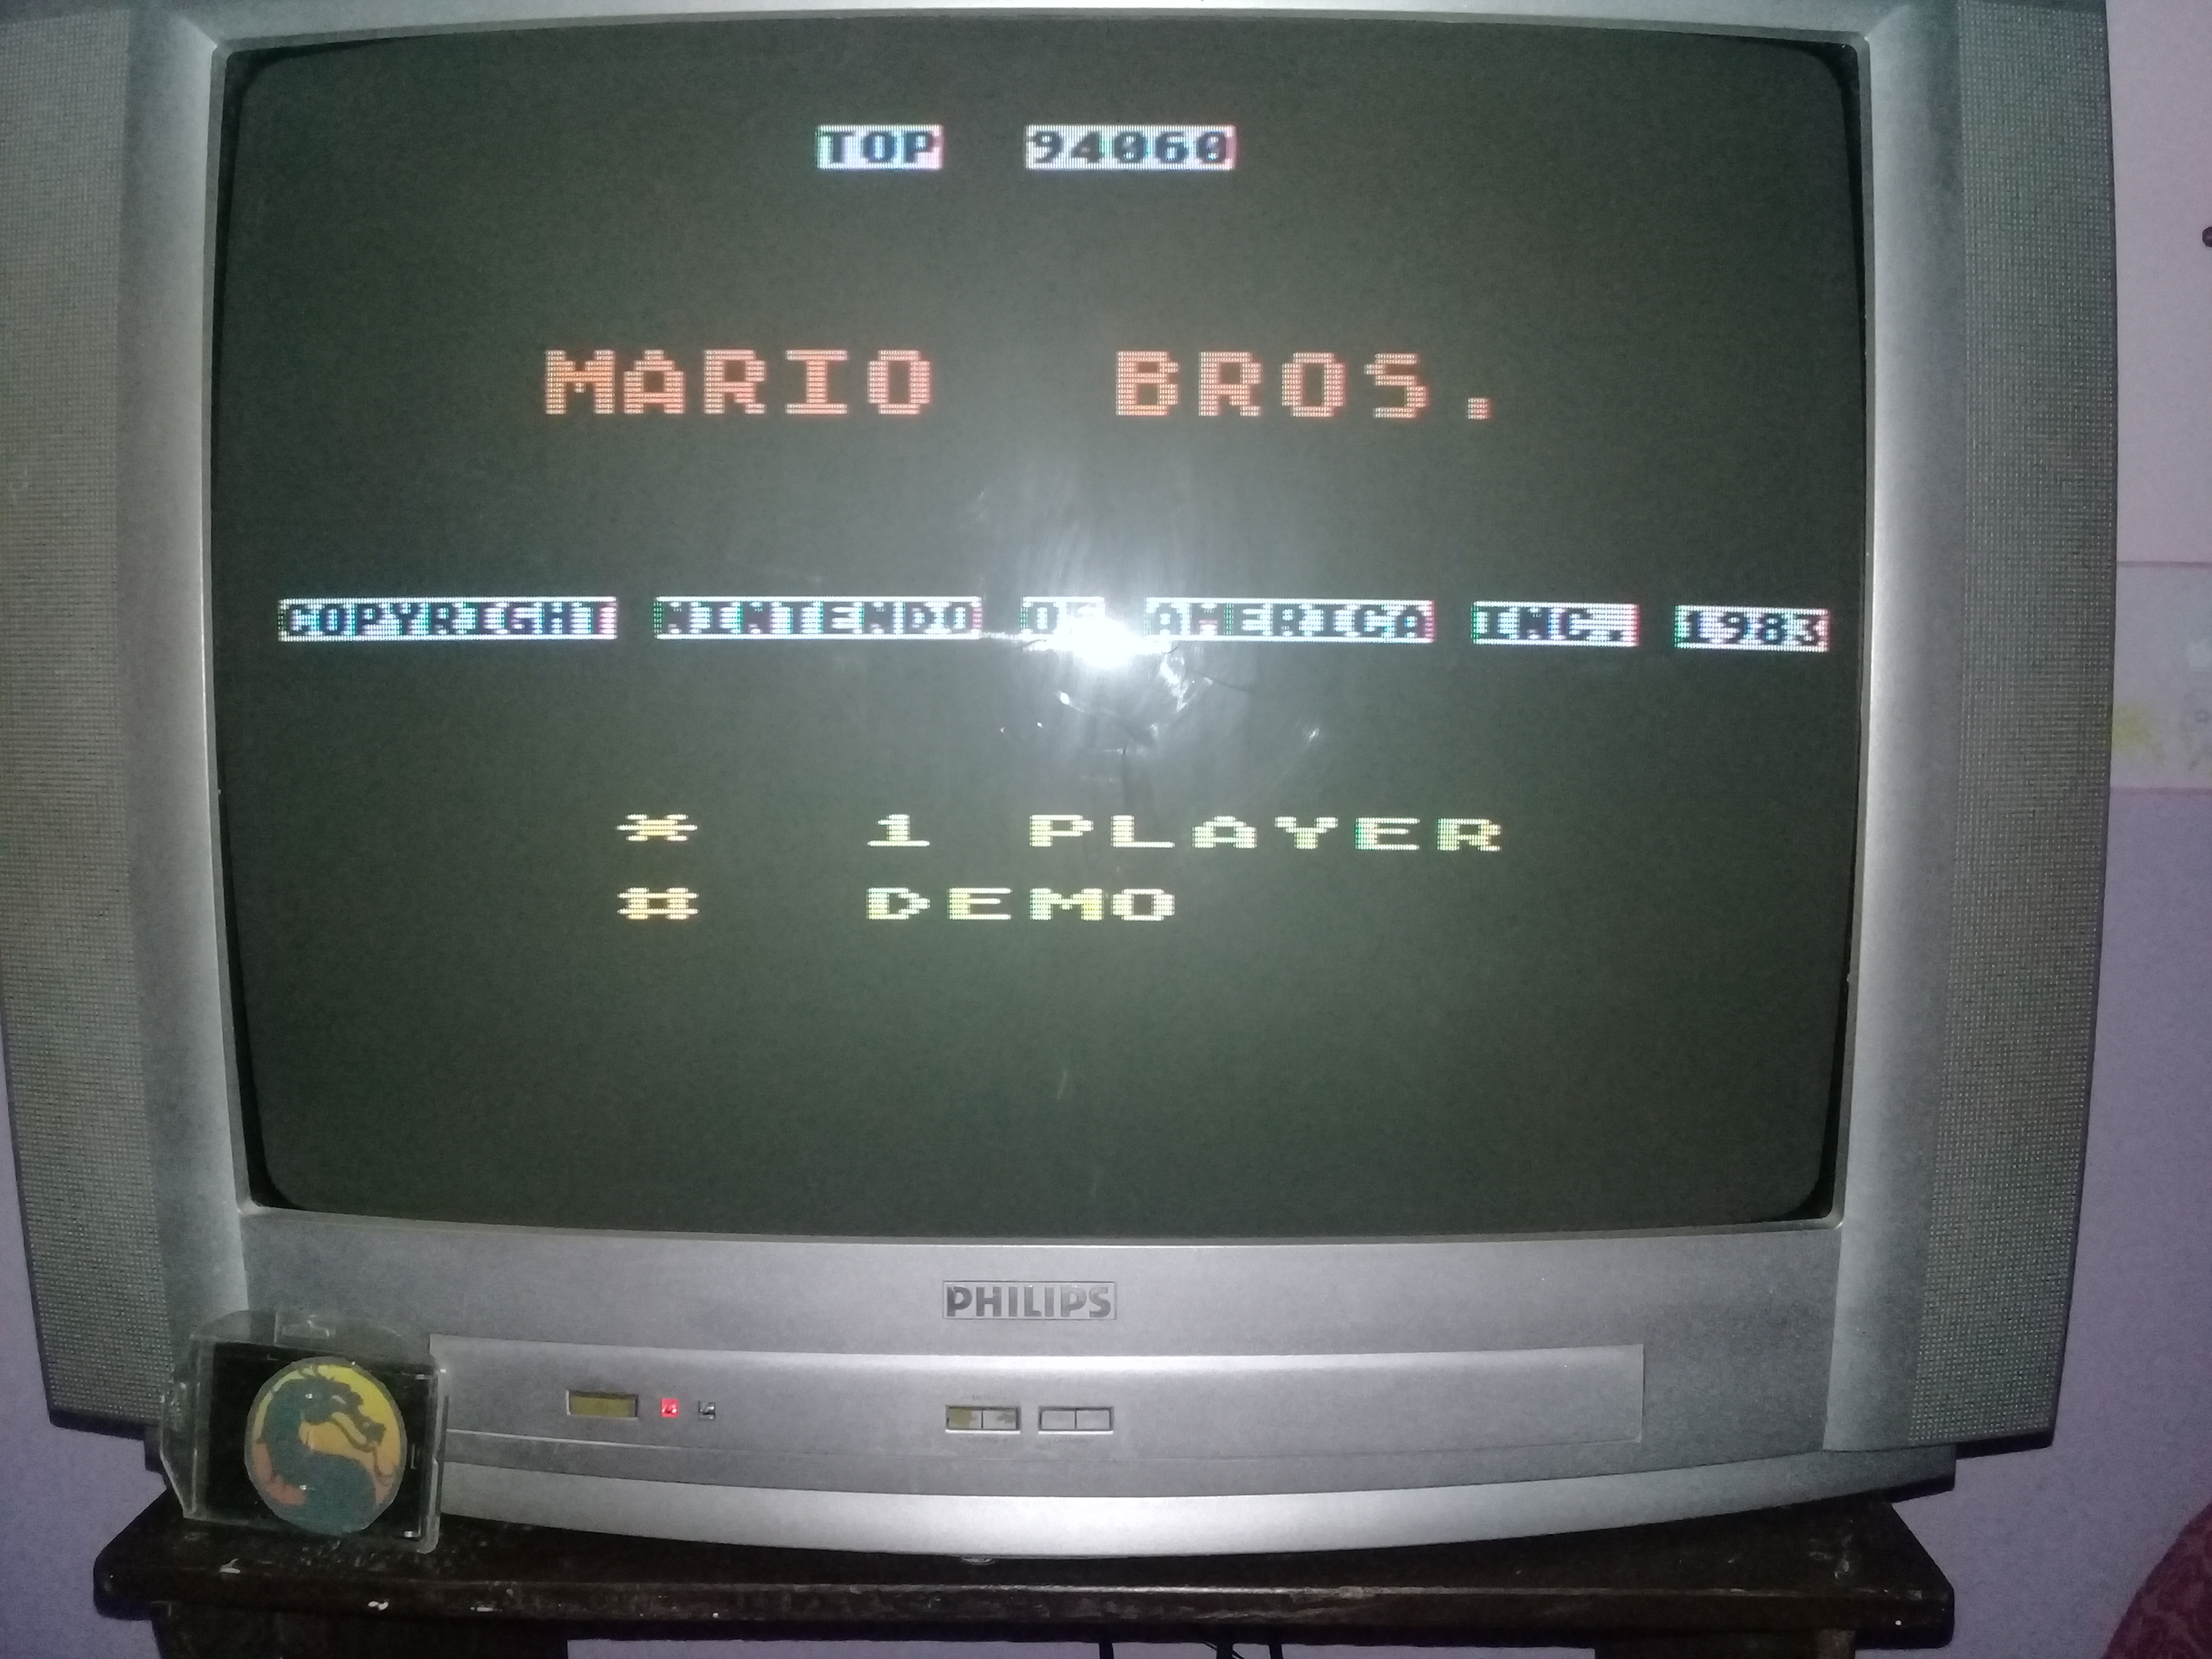 omargeddon: Mario Bros (Atari 400/800/XL/XE) 94,060 points on 2020-03-04 00:21:18